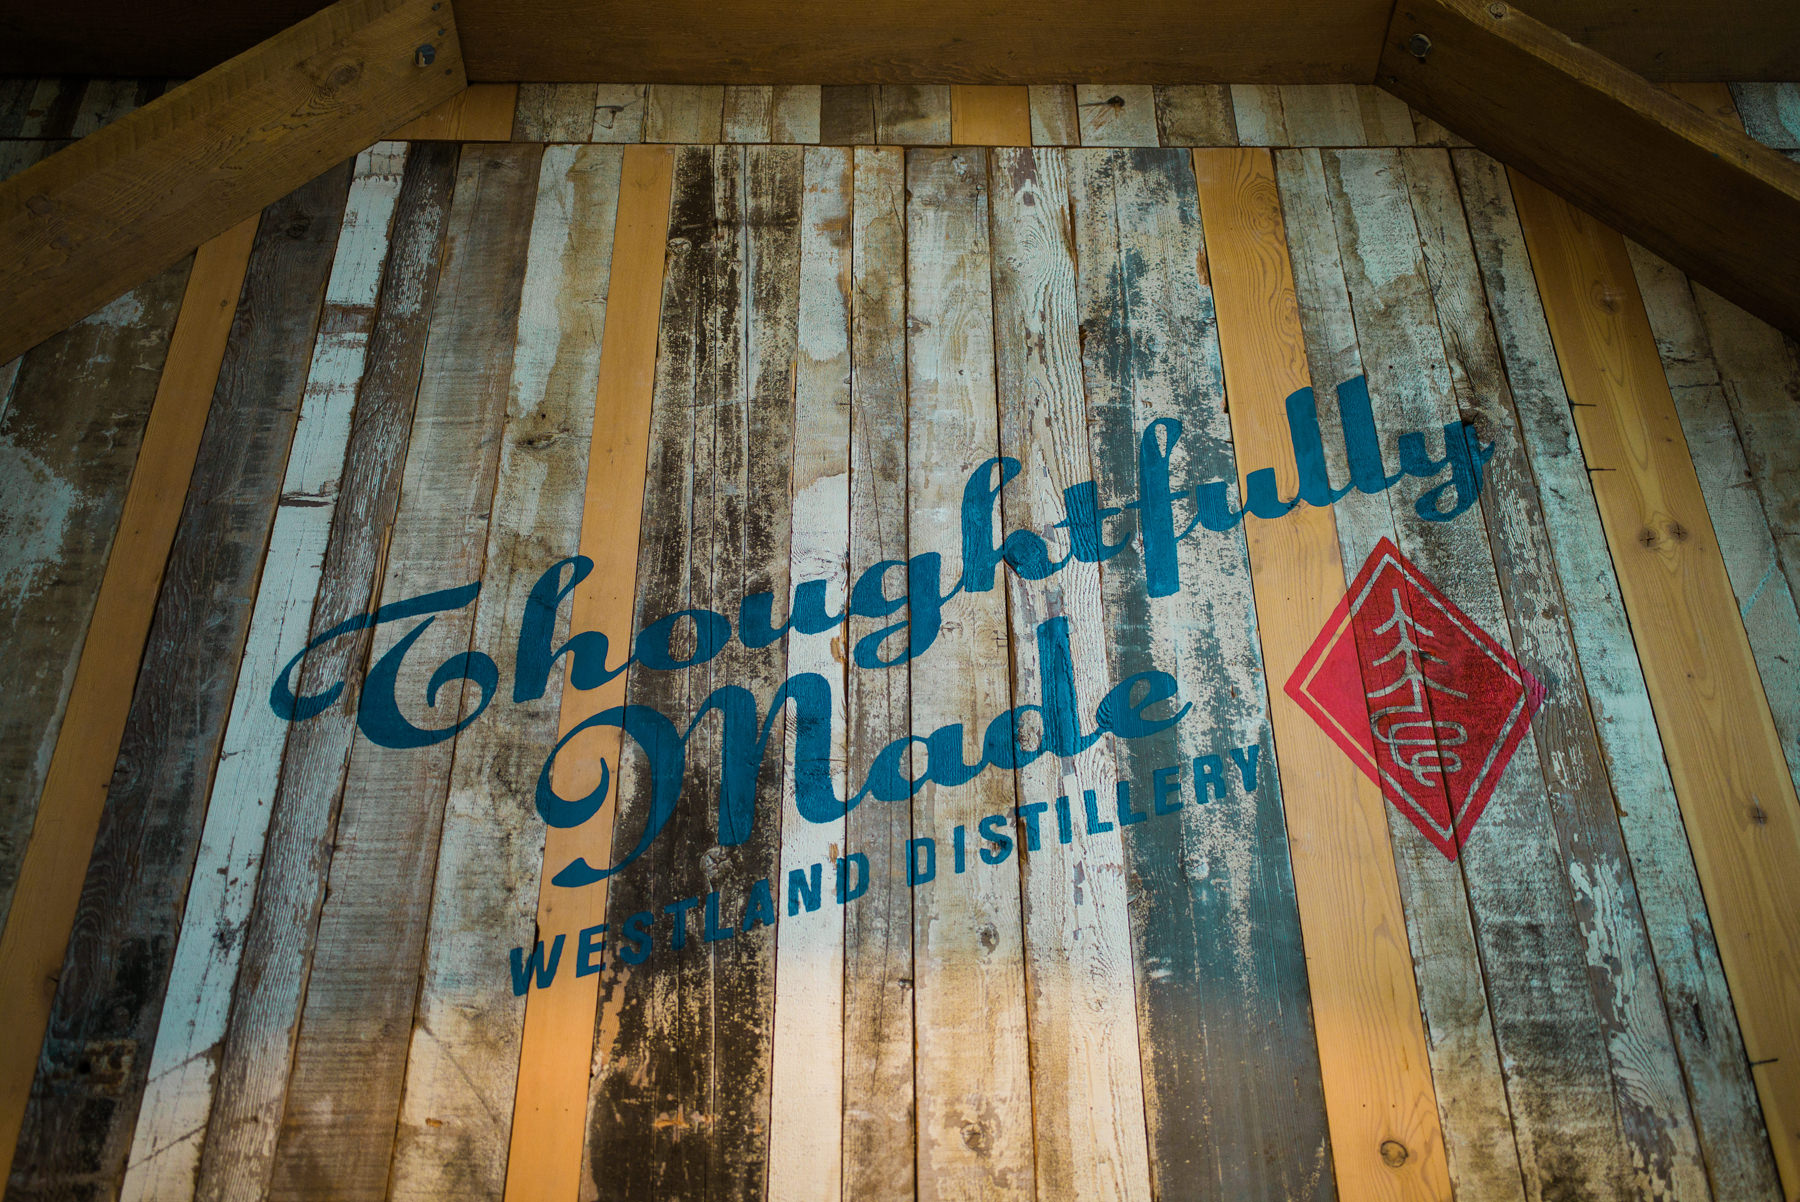 046-hand-painted-sign-on-weathered-reclaimed-wood-at-westland-distillery.jpg